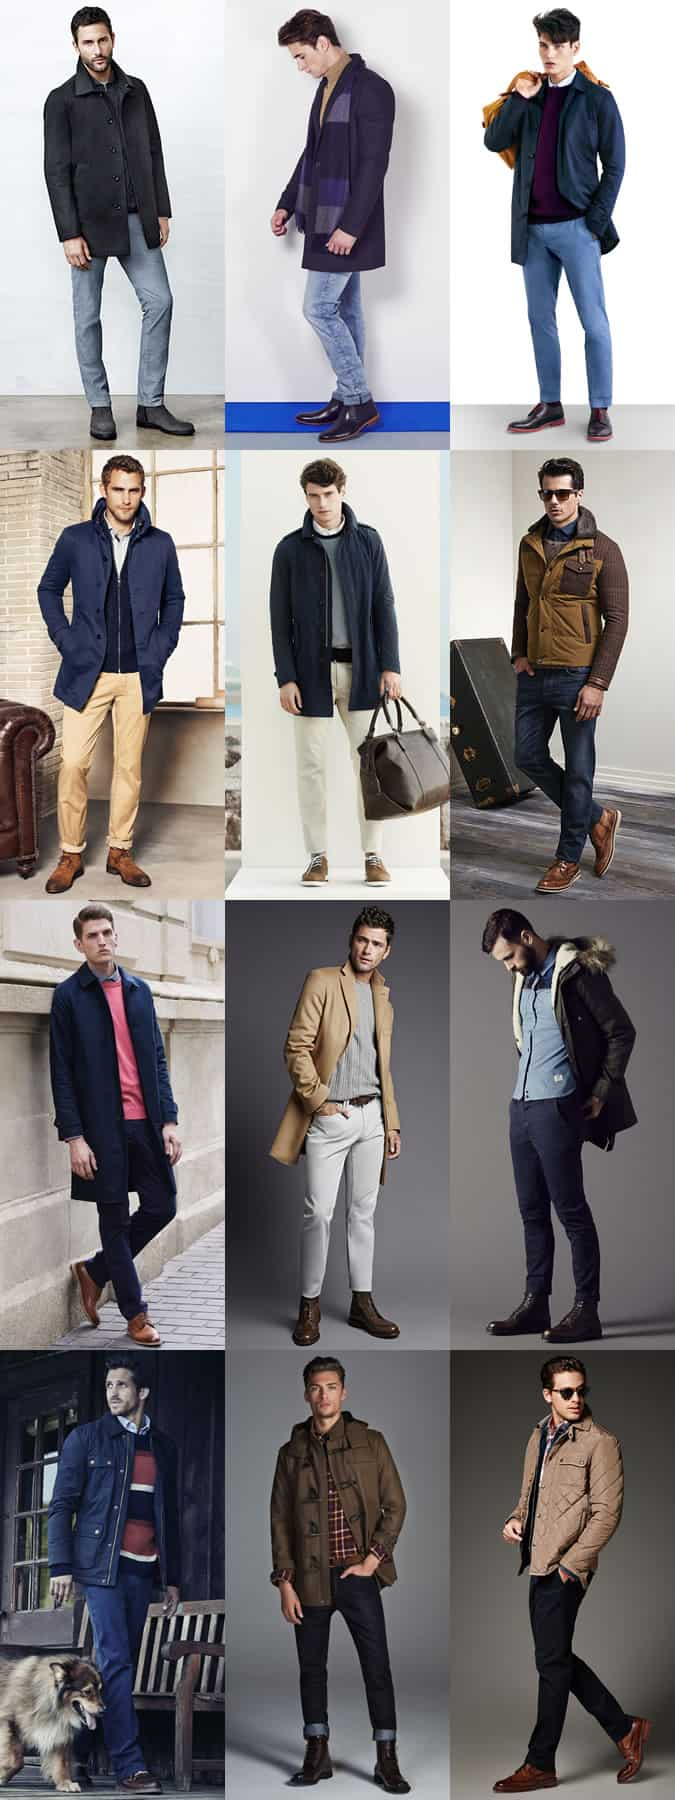 Men's Date Outfit Inspiration Lookbook - The Relaxed Day Date